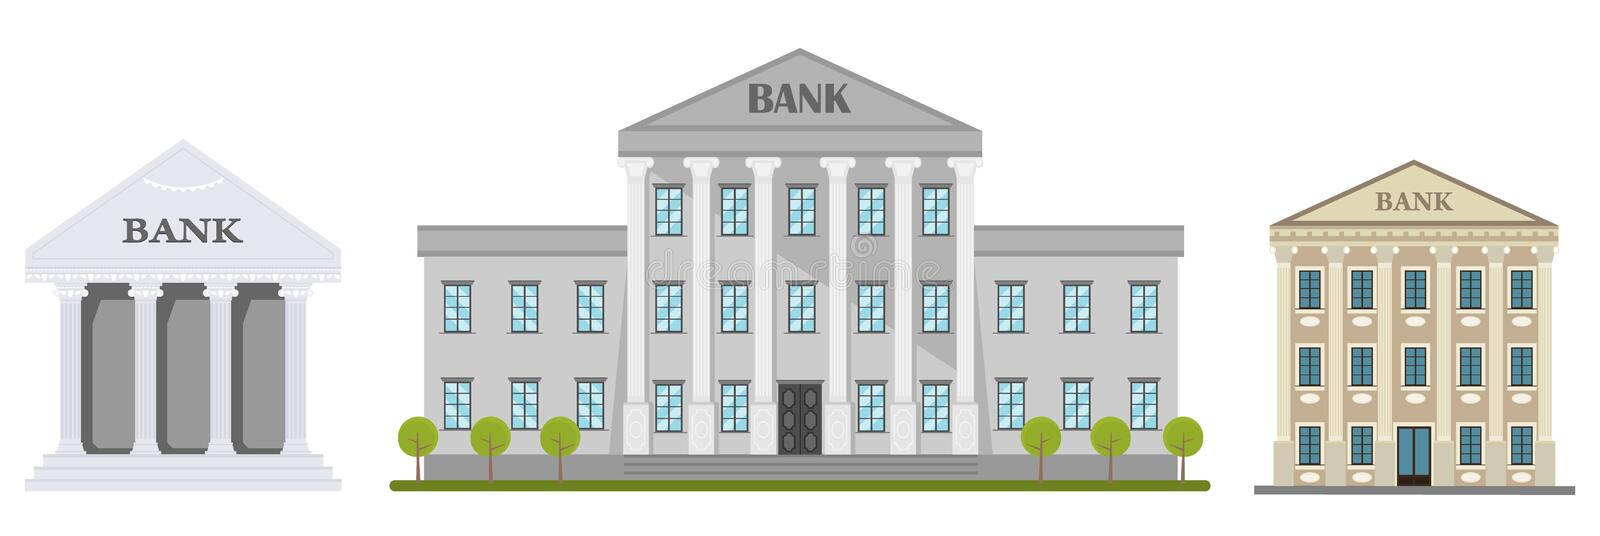 Retro Bank Design.Retro Bank Stock Illustrations 9 992 Retro Bank Stock